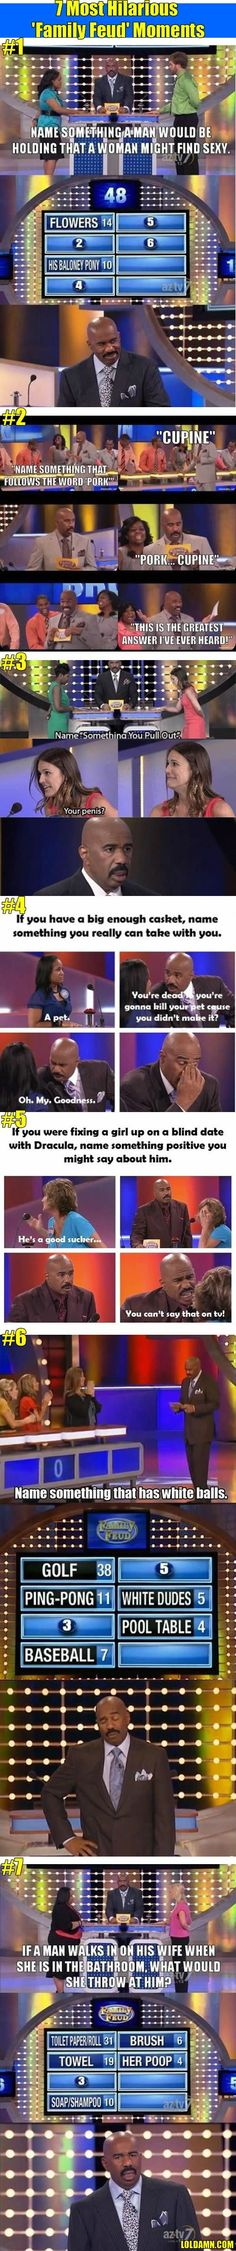 7 Most Hilarious 'Family Feud' Moments.: OMG family fued what are you doing with your life